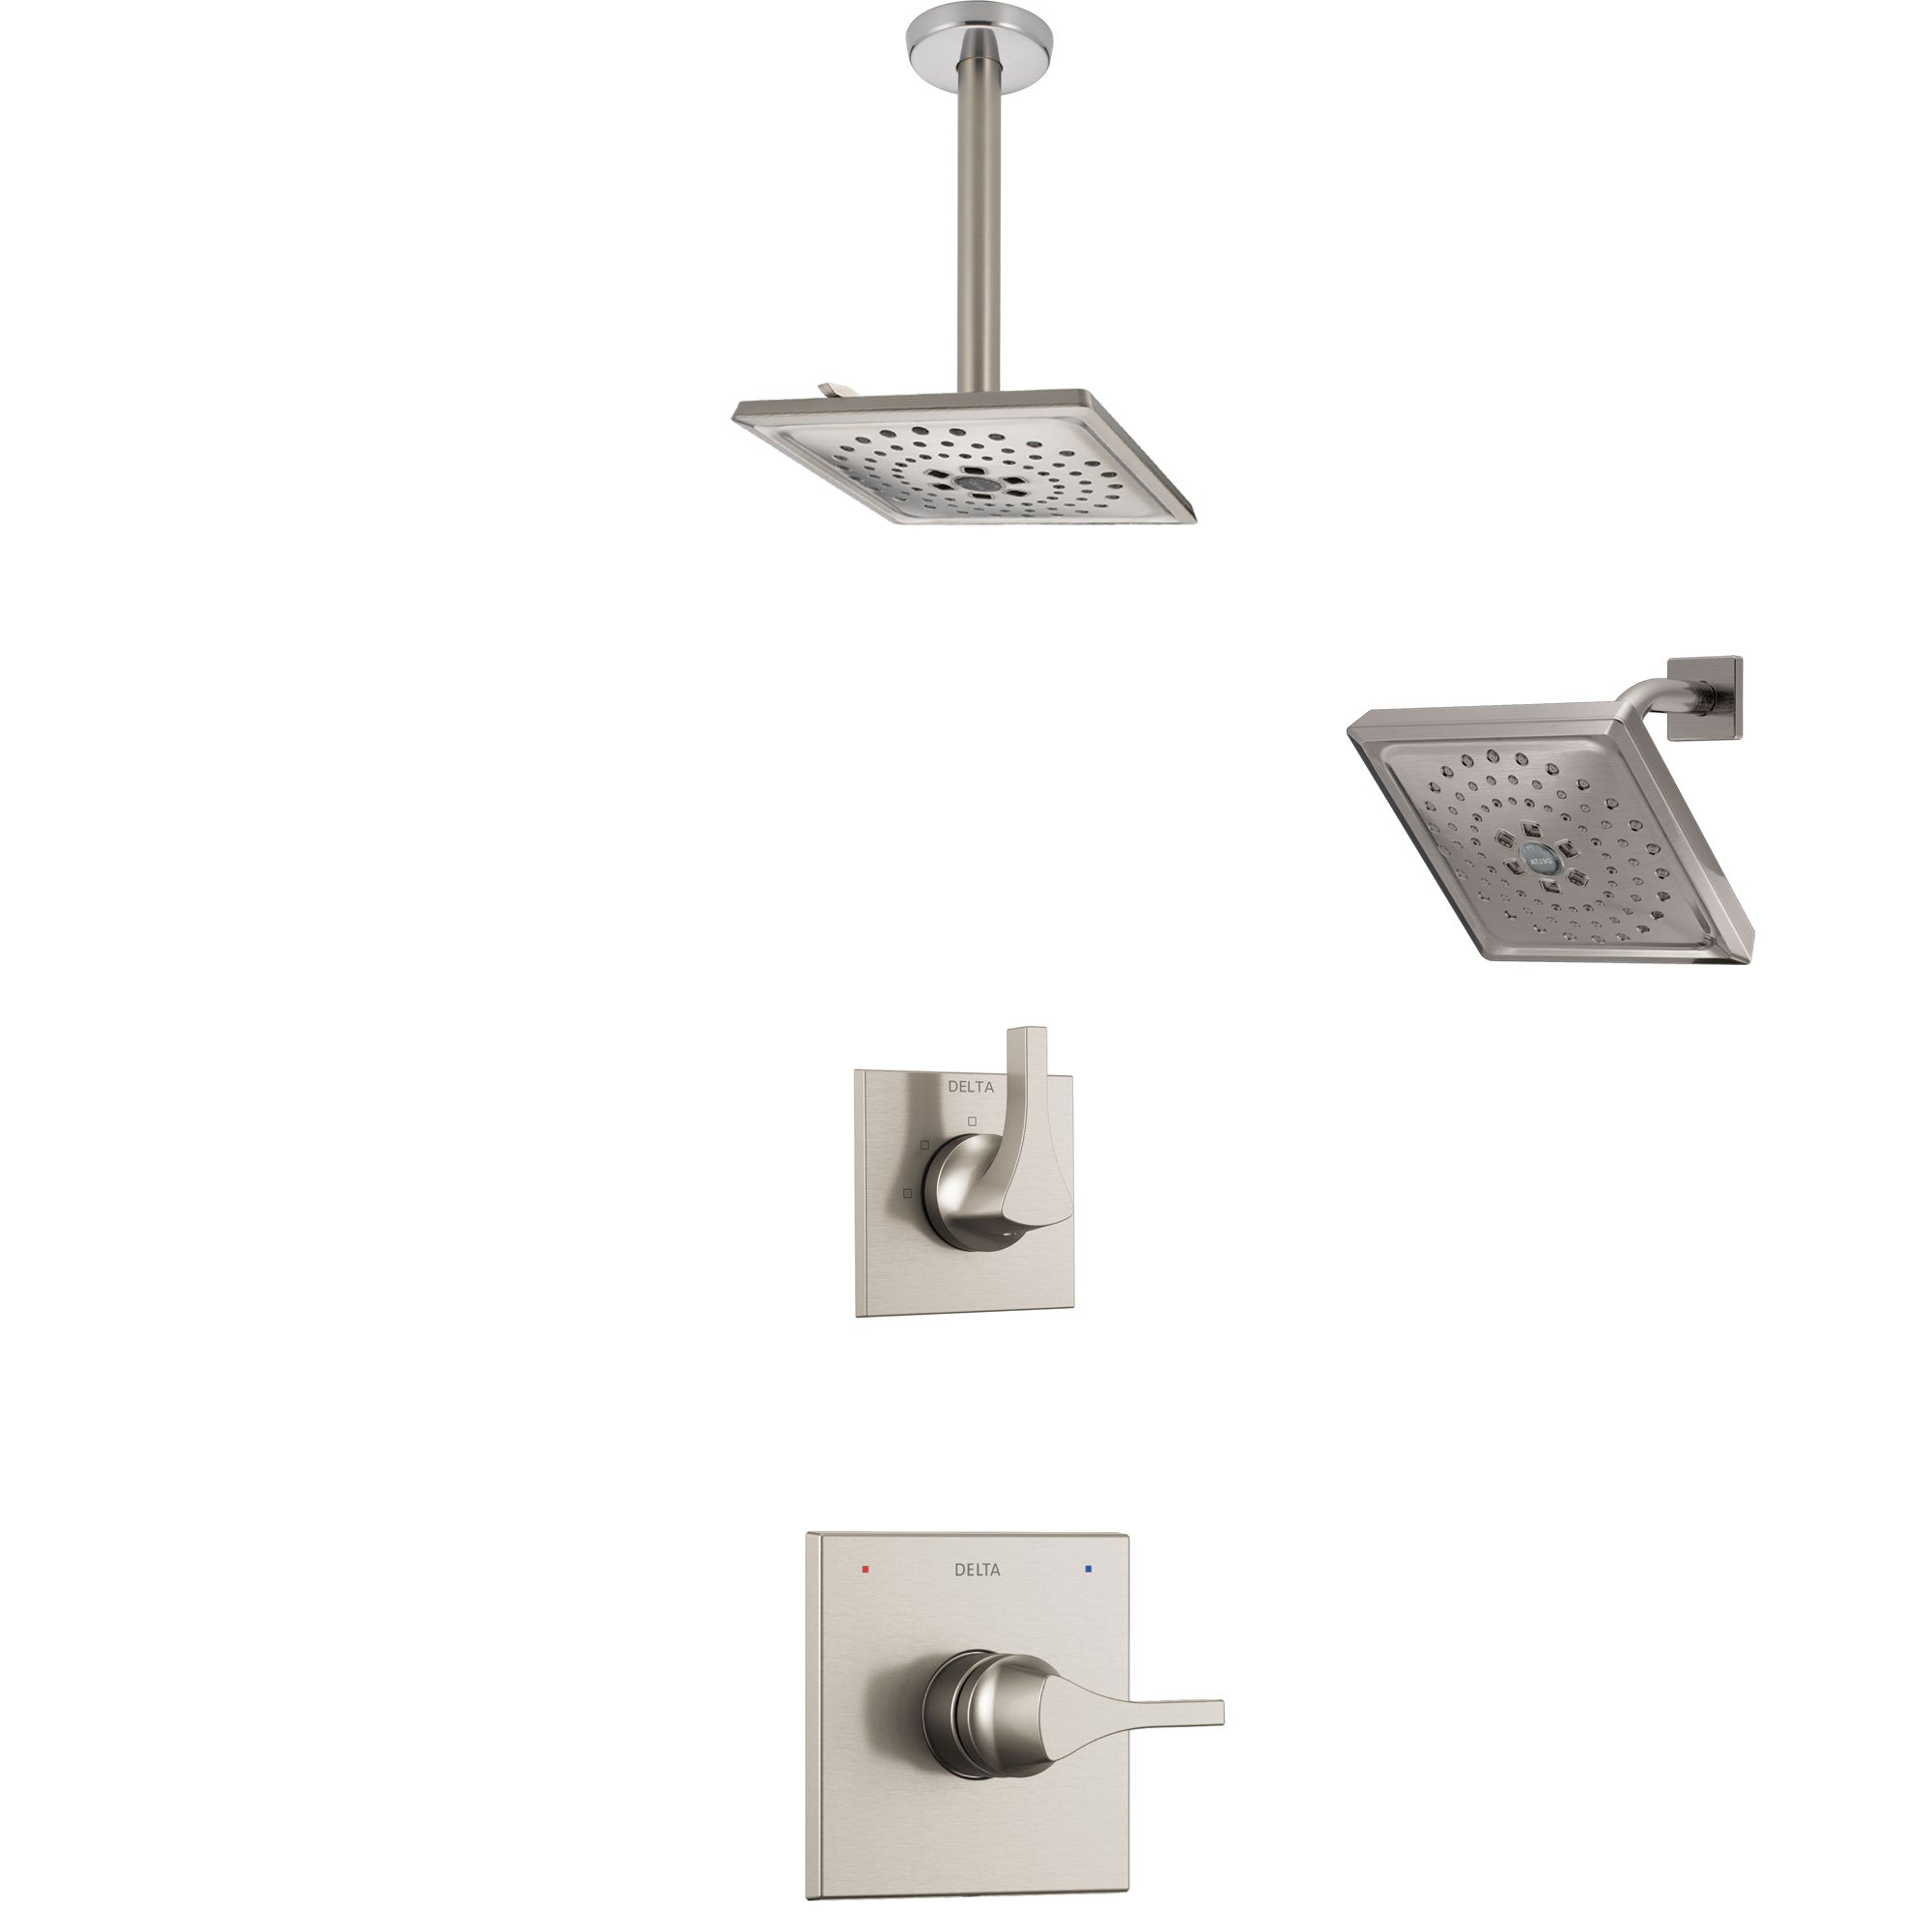 Delta Zura Stainless Steel Finish Shower System with Control Handle, 3-Setting Diverter, Showerhead, and Ceiling Mount Showerhead SS14274SS6